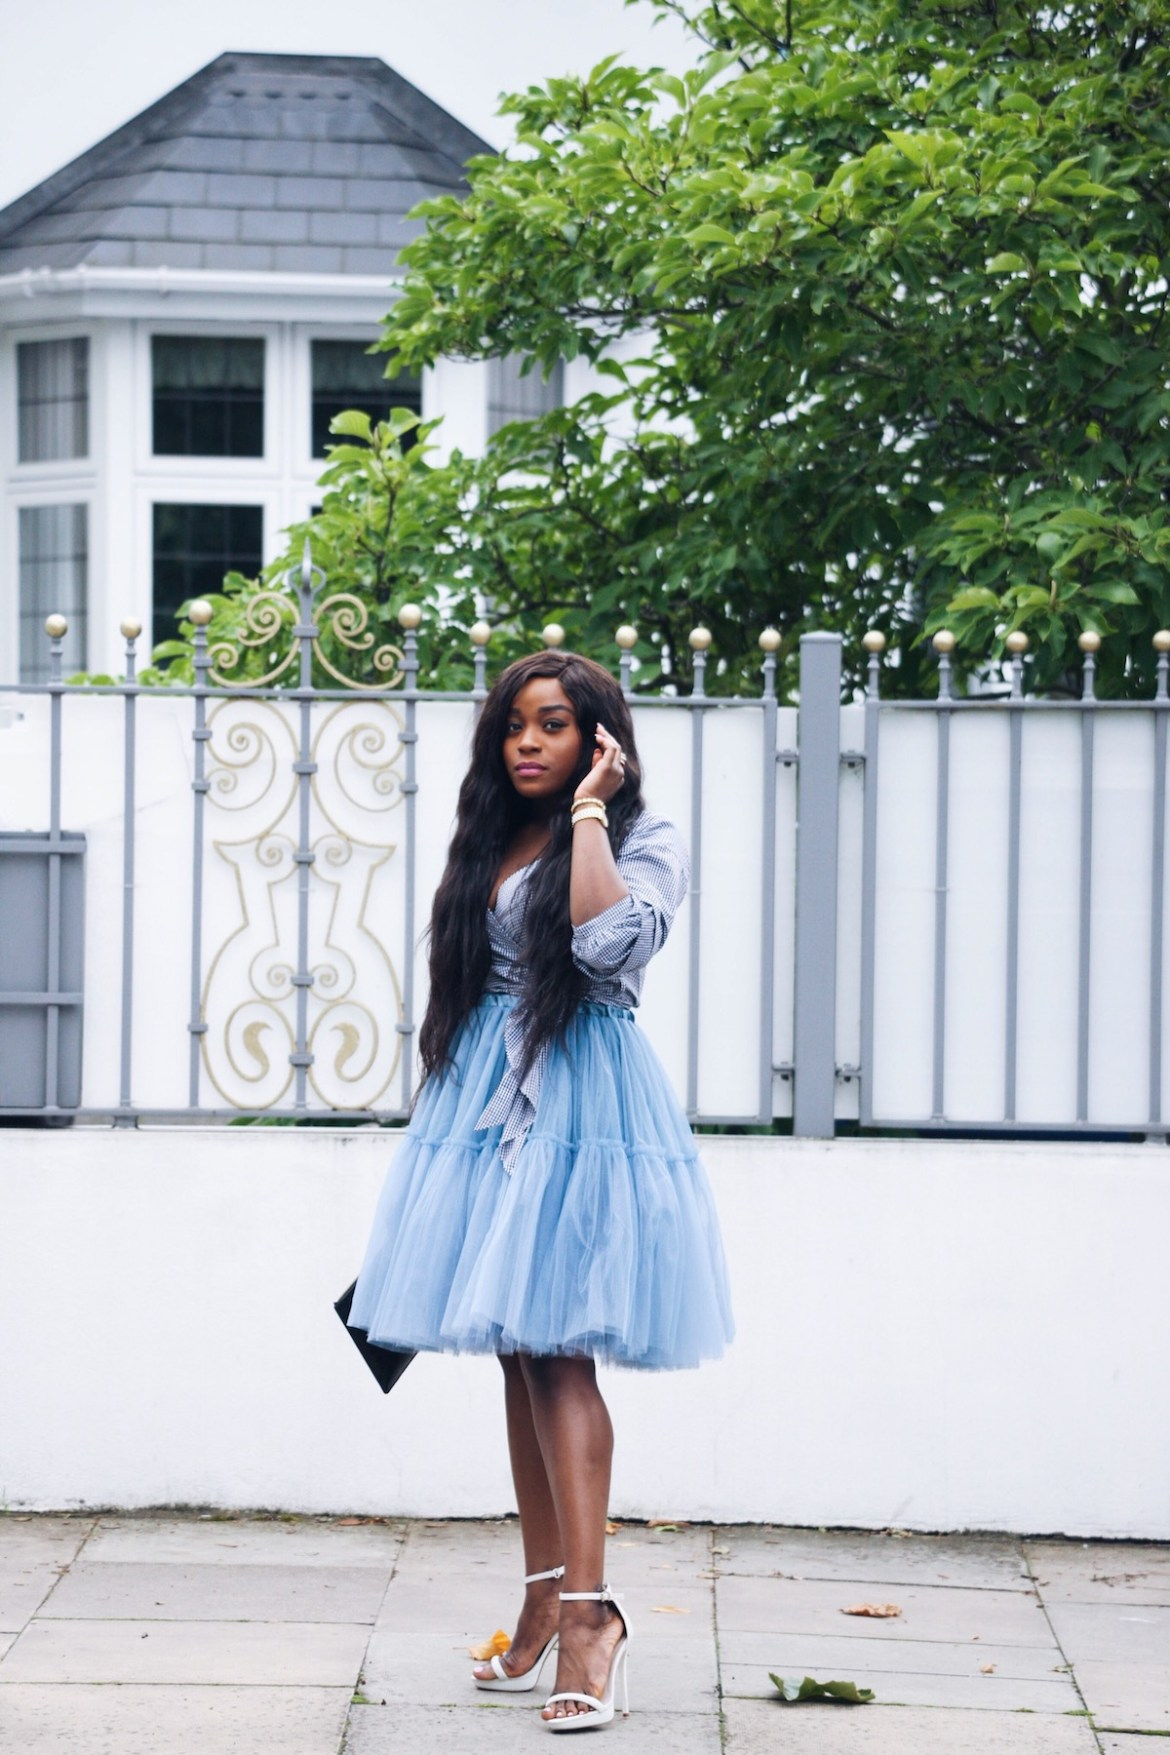 A Special Piece: The Tutu Skirt